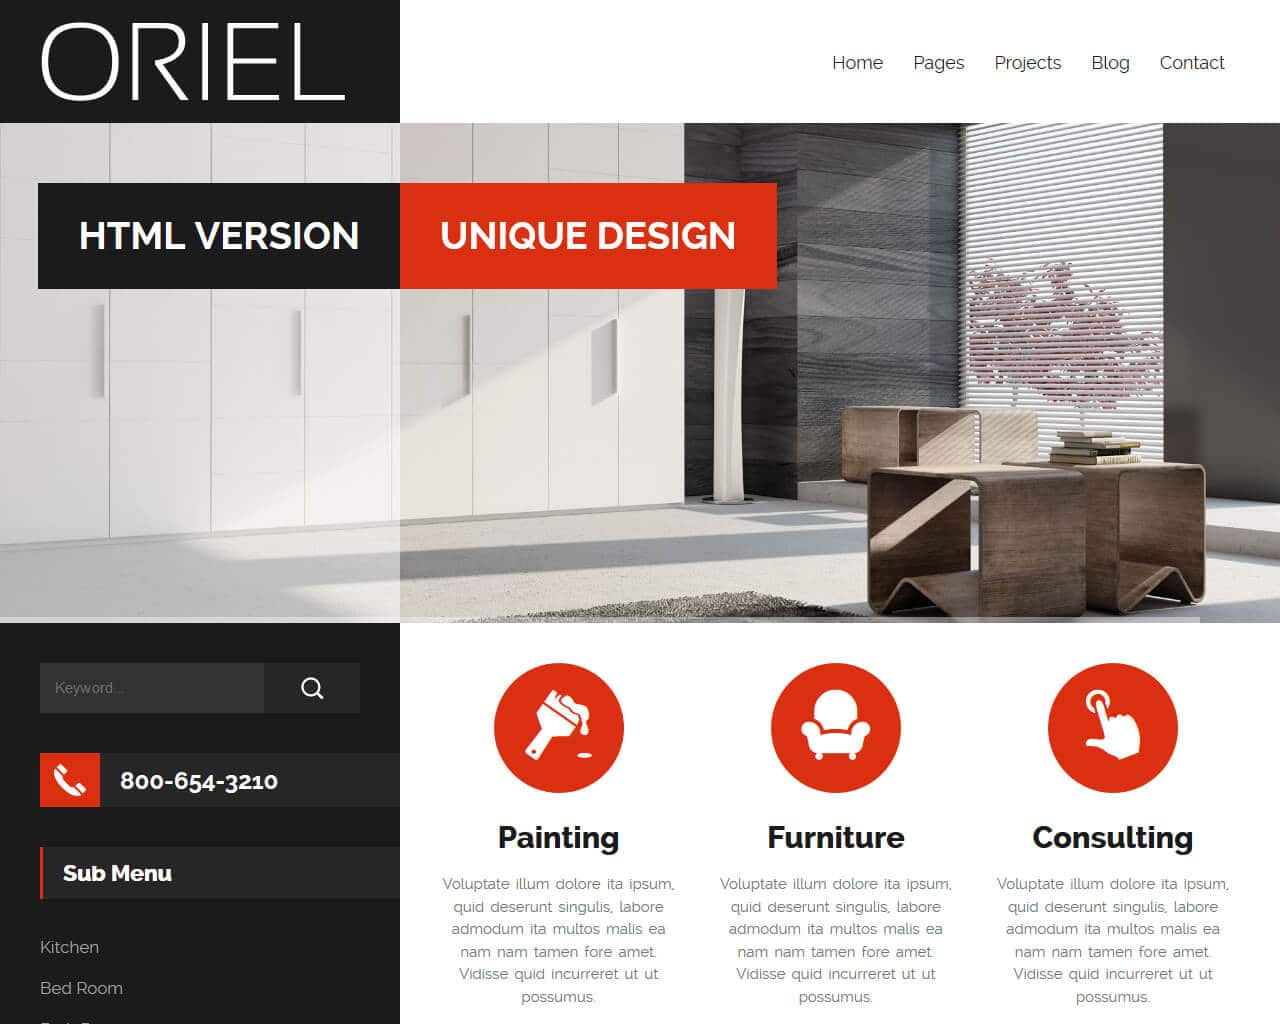 ORIEL Website Template